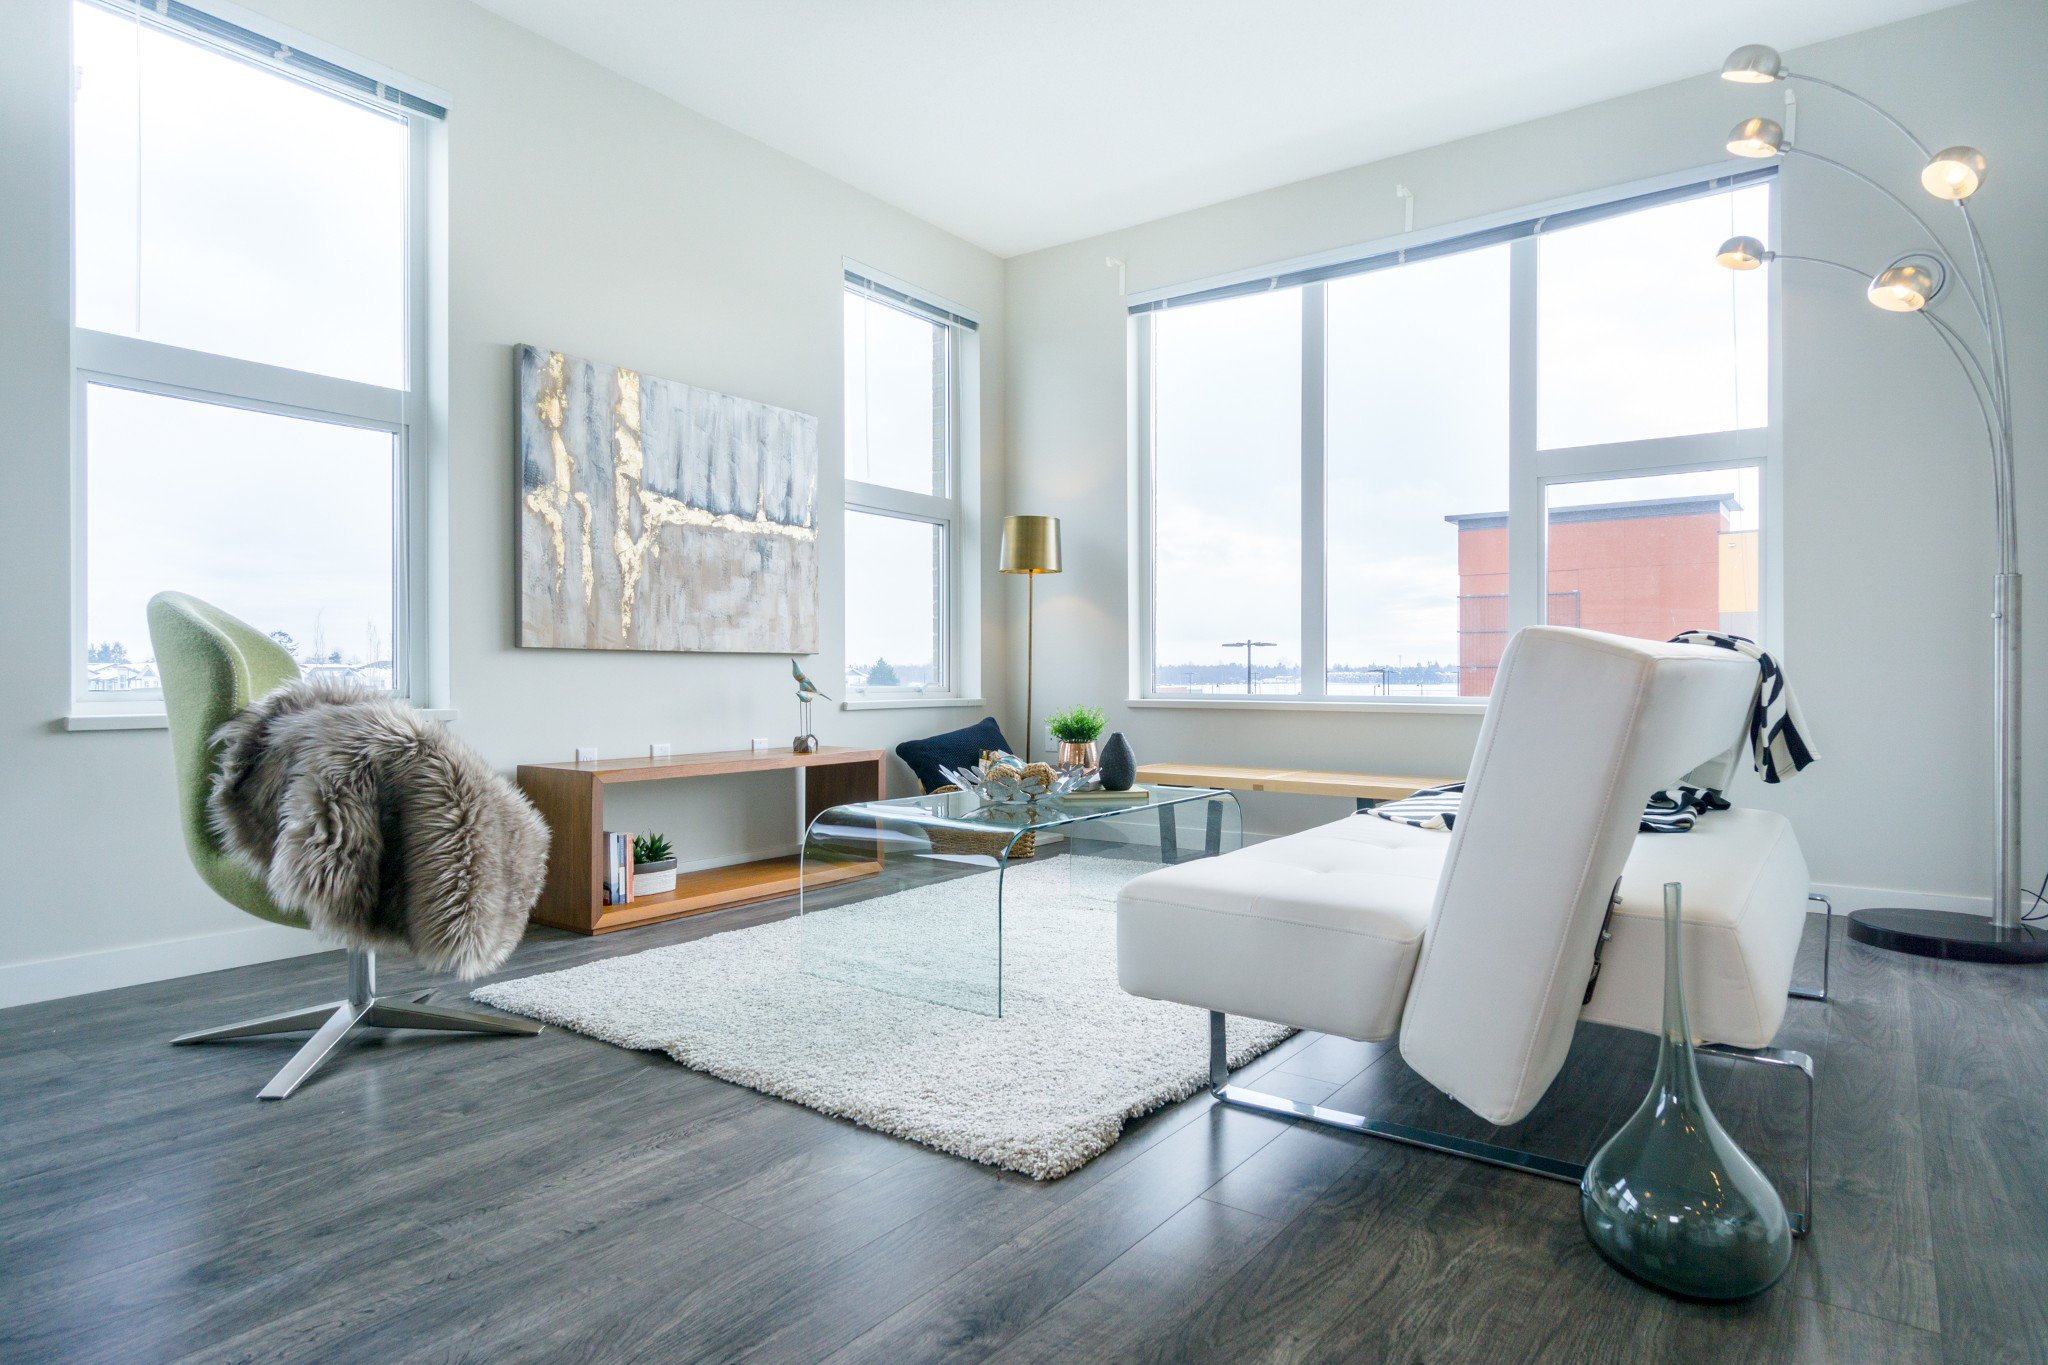 """Photo 16: Photos: 303 9311 ALEXANDRA Road in Richmond: West Cambie Condo for sale in """"ALEXANDRA COURT"""" : MLS®# R2347629"""